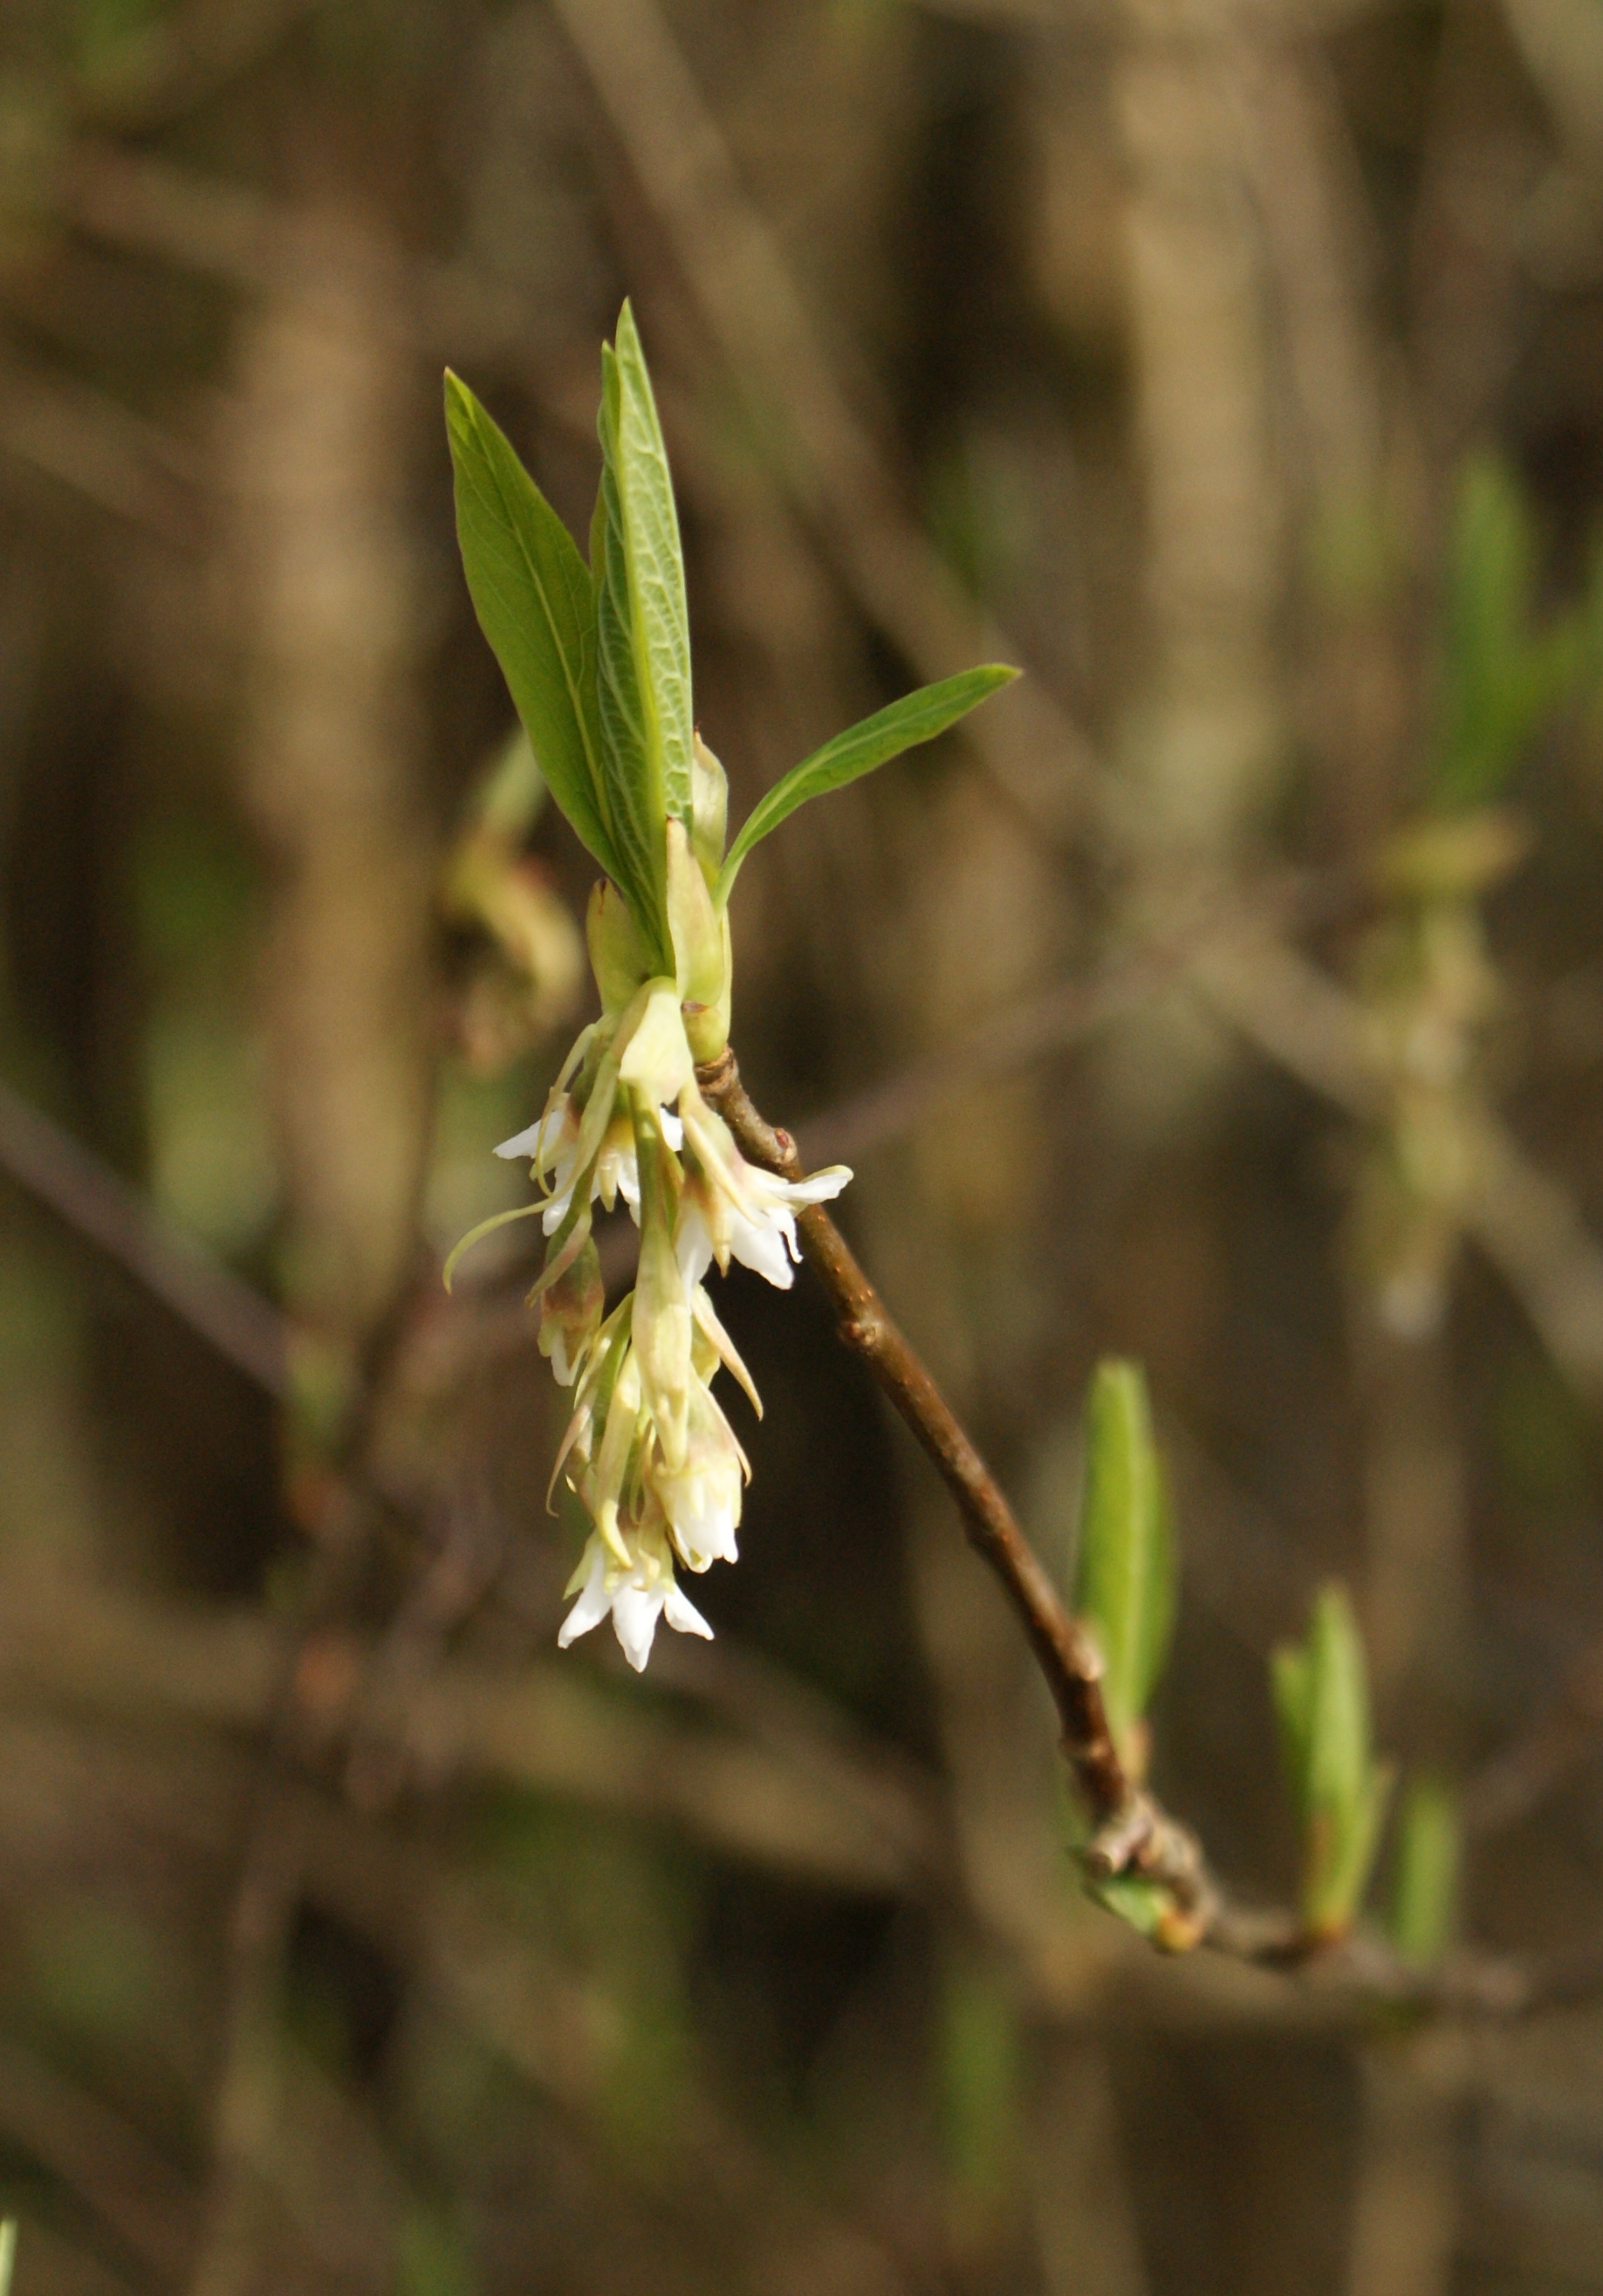 washington native plants, white flowers, early spring, nisqually